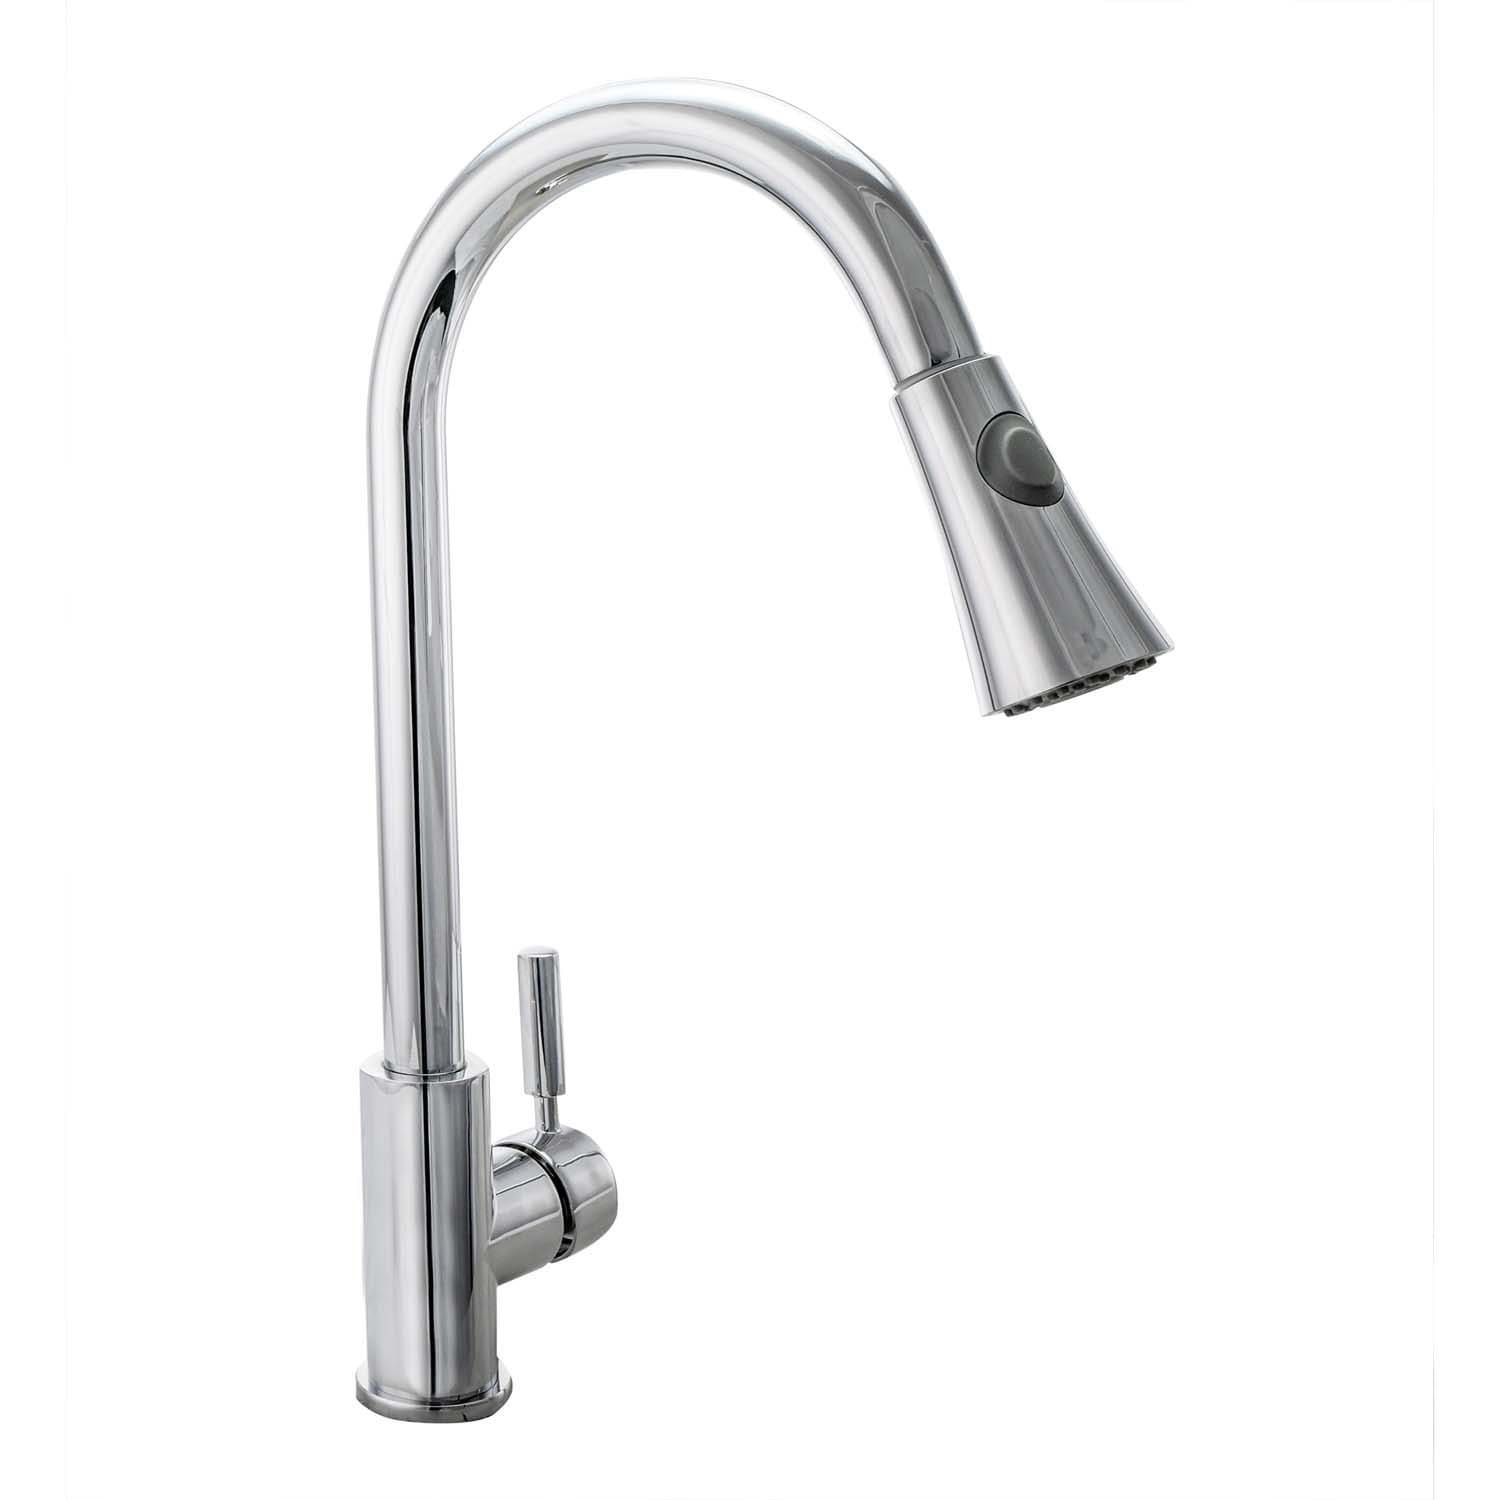 Cosmo Single-Handle Pull-Down Sprayer Kitchen Faucet with Ceramic Disc  Cartridge in Chrome